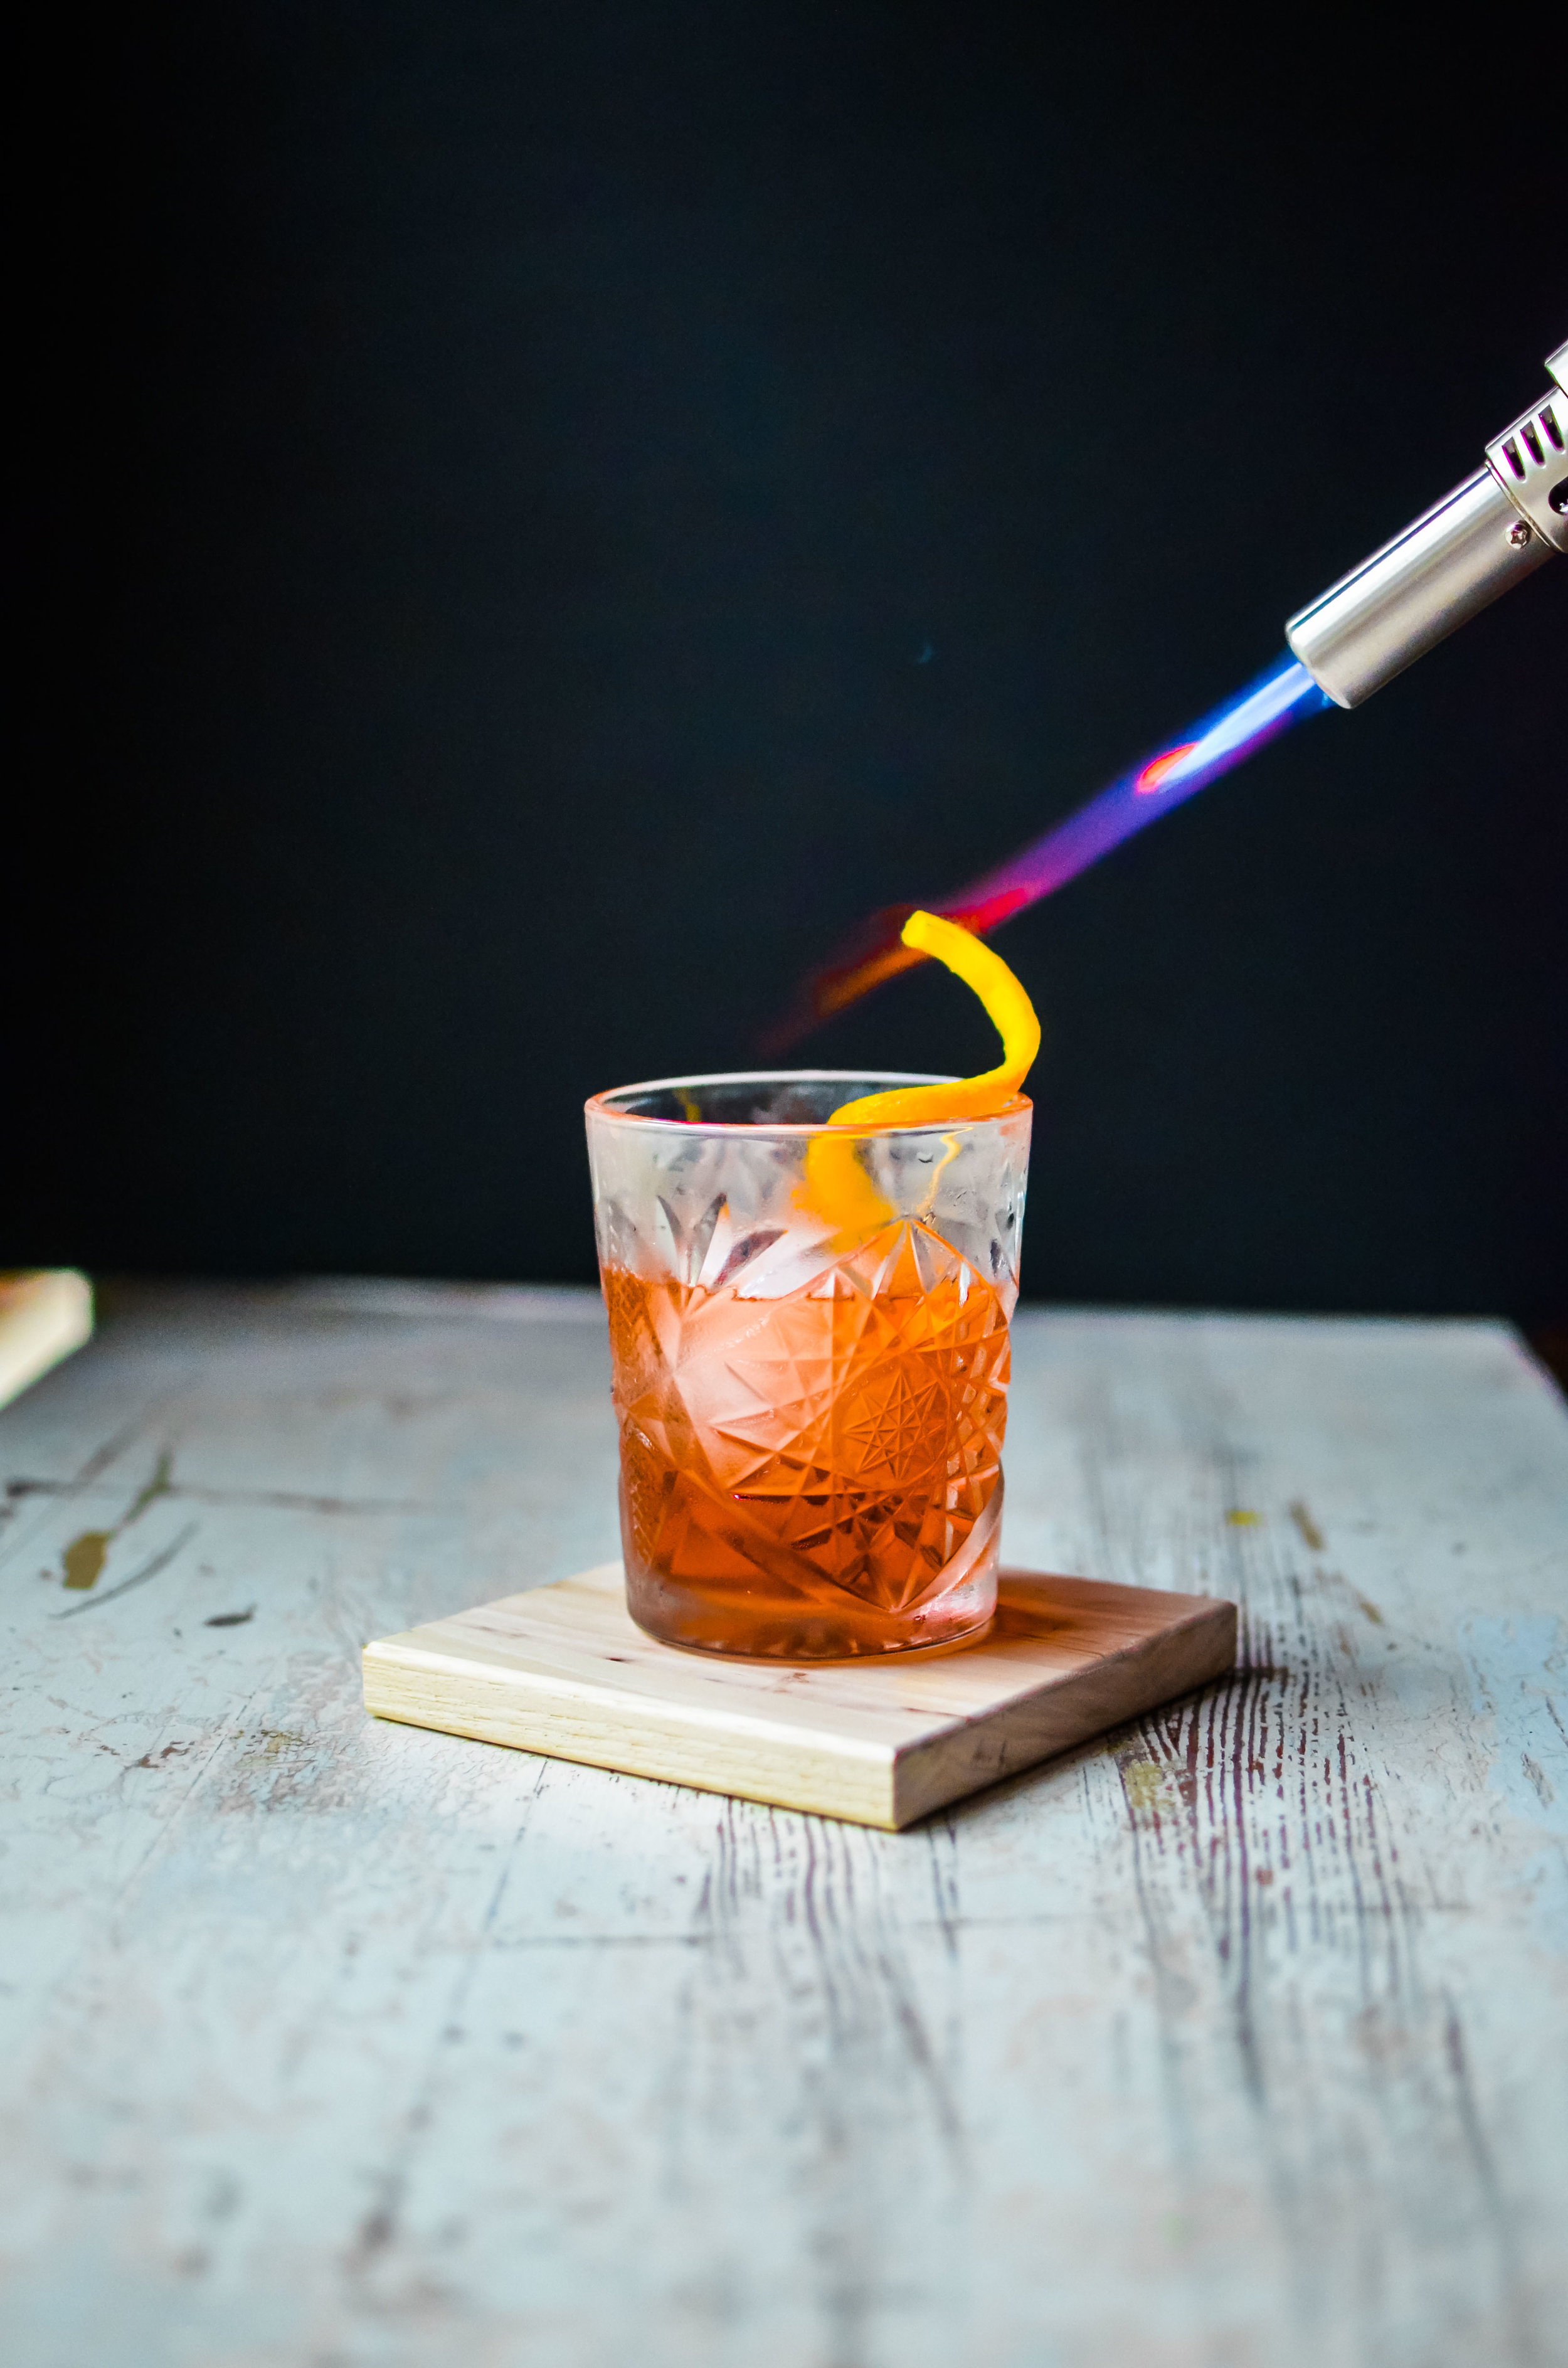 Wendling_Boyd_Negroni_Old_Fashioned_Cocktail_Bespoke-2.jpg